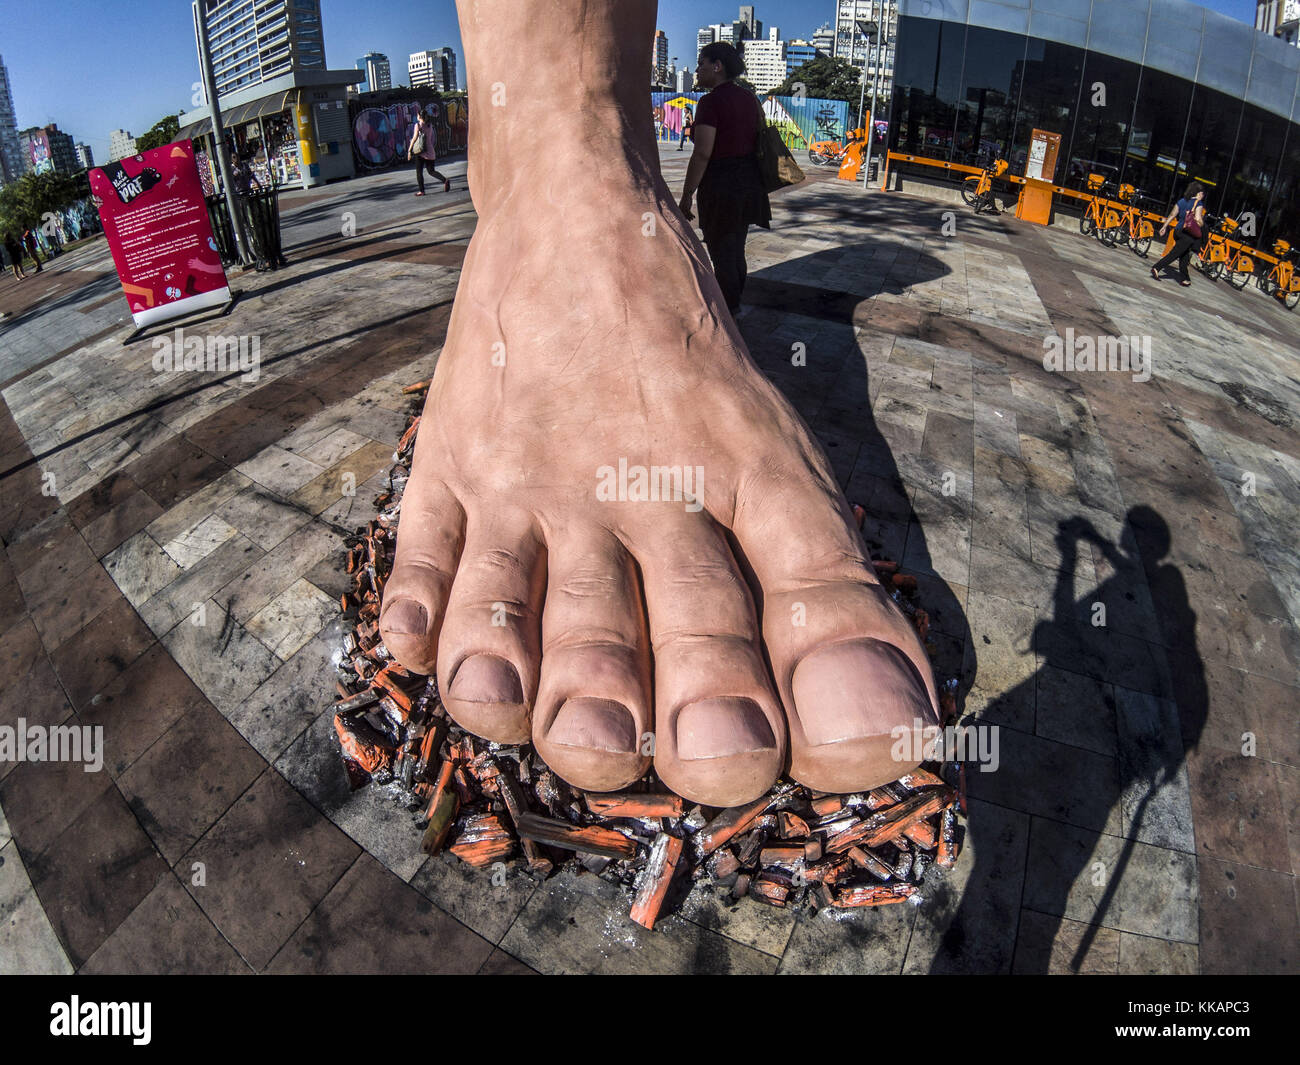 Sao Paulo, Barzil. 30th Nov, 2017. Sculpture of a foot, by the artist Eduardo Srur, installed in the Largo da Batata. - Stock Image